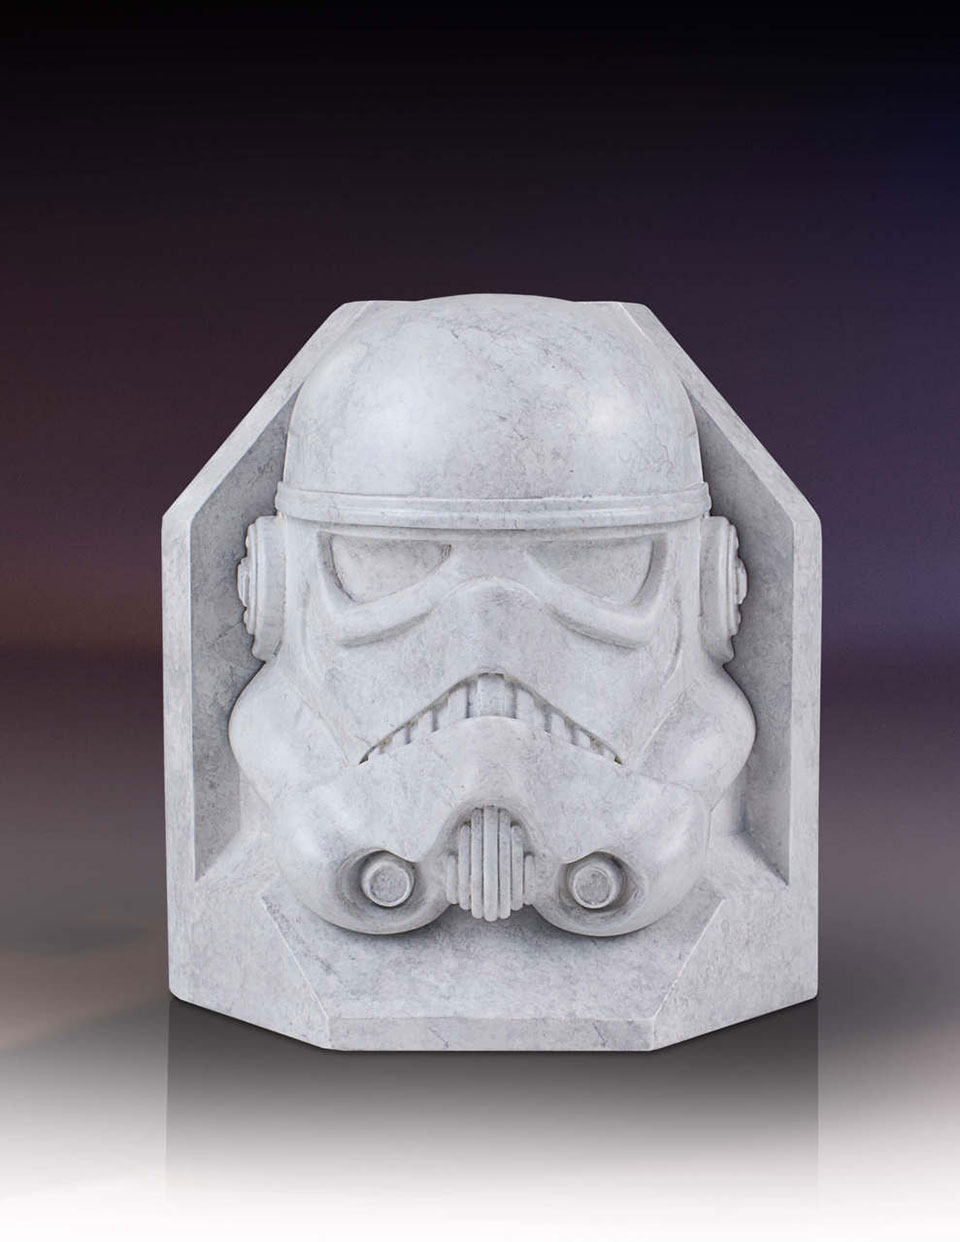 Check Out These Faux Marble Darth Vader And Stormtrooper